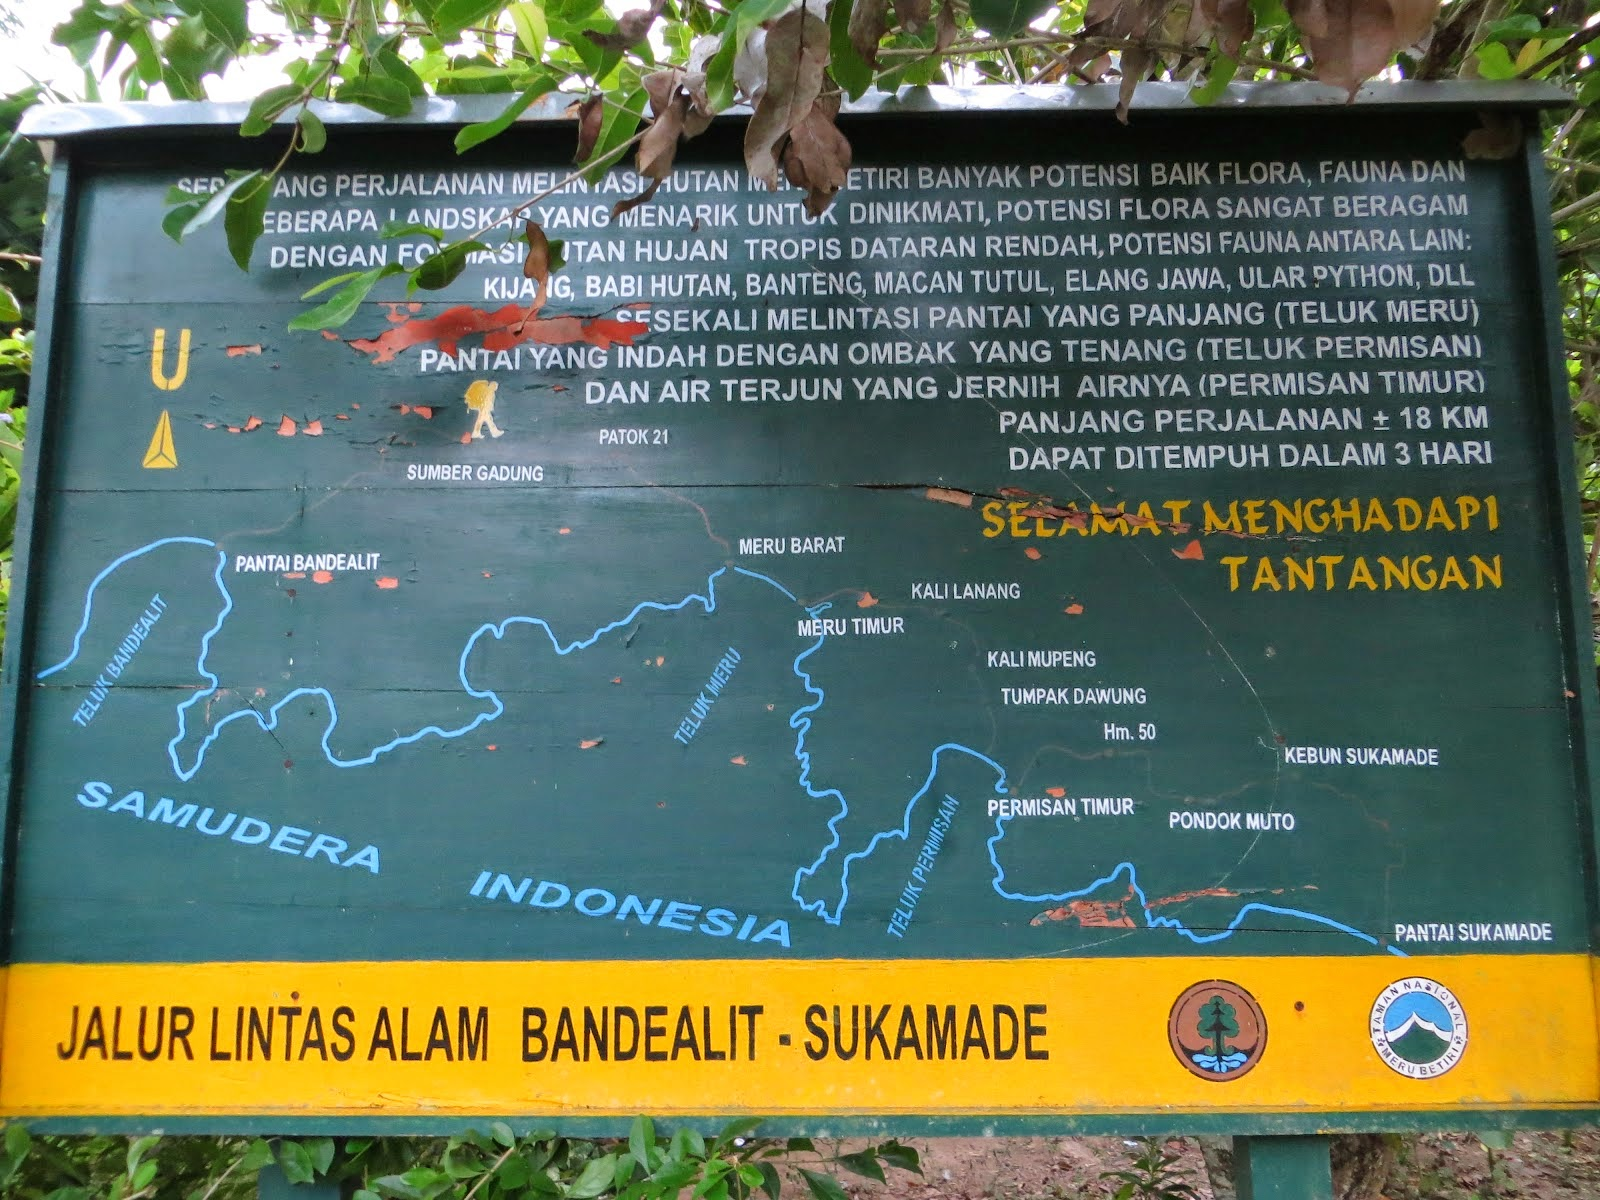 Jungle tracking di Taman nasional Meru Betiri